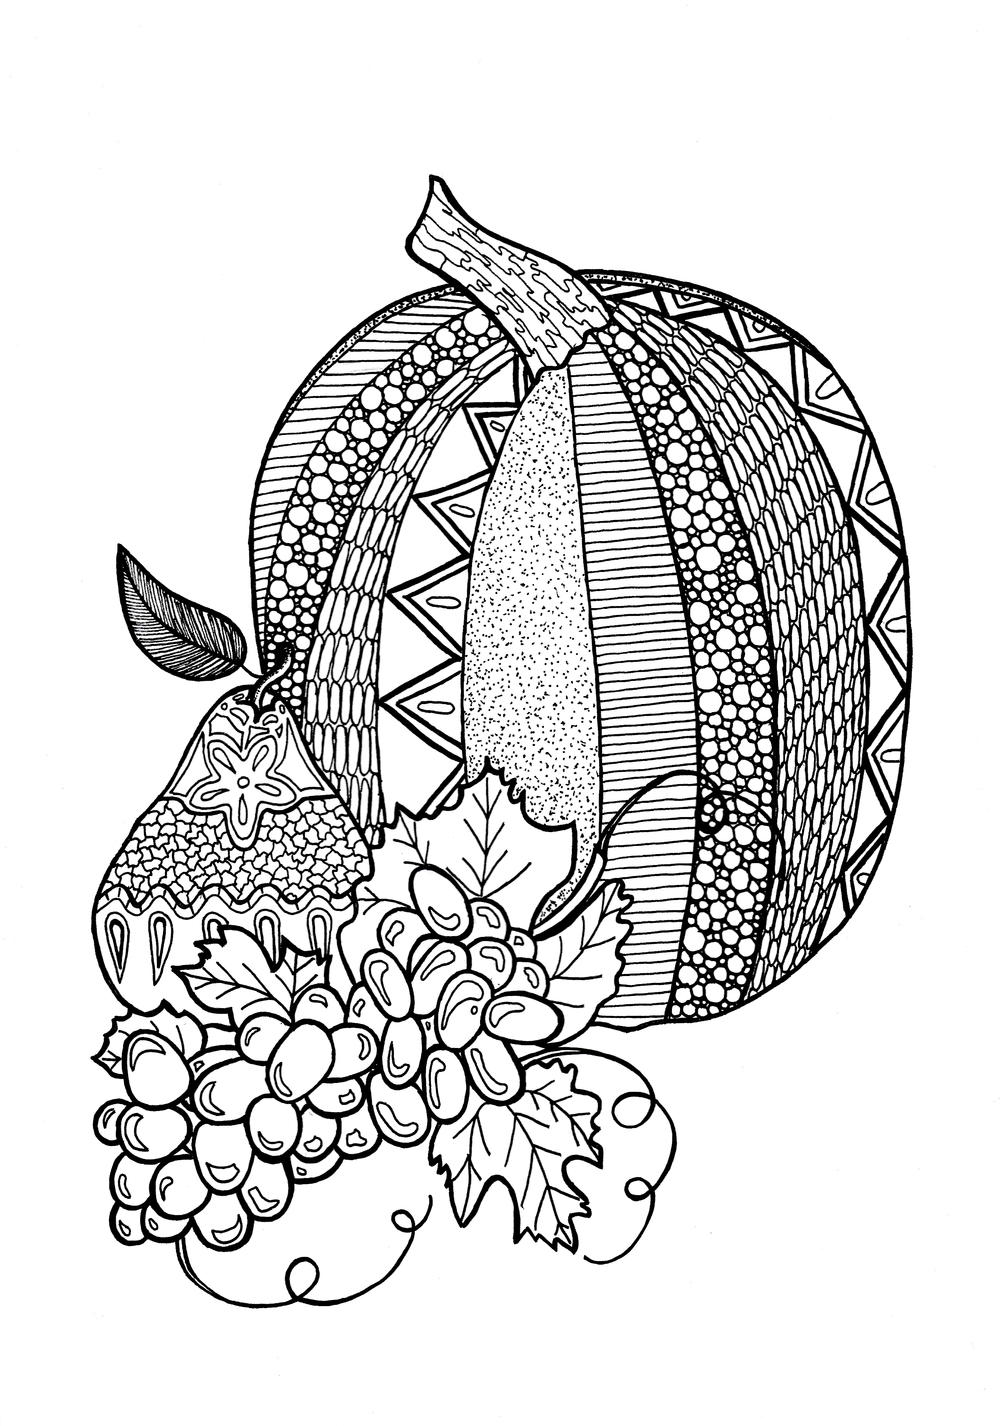 pumpking coloring pages print download pumpkin coloring pages and benefits of pumpking pages coloring 1 2